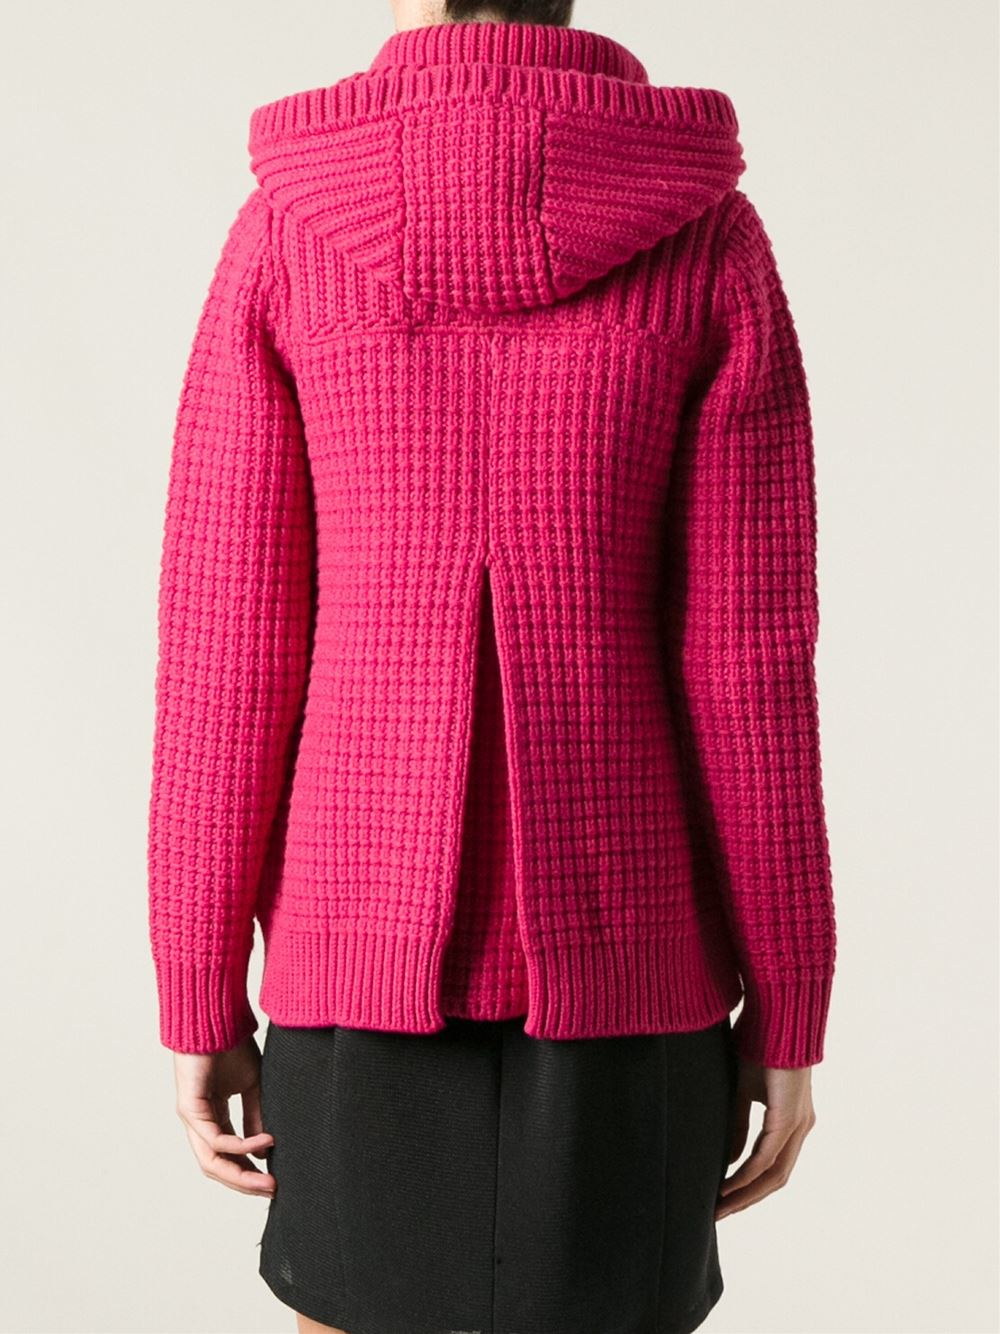 Bark Knitted Duffle Coat in Pink | Lyst